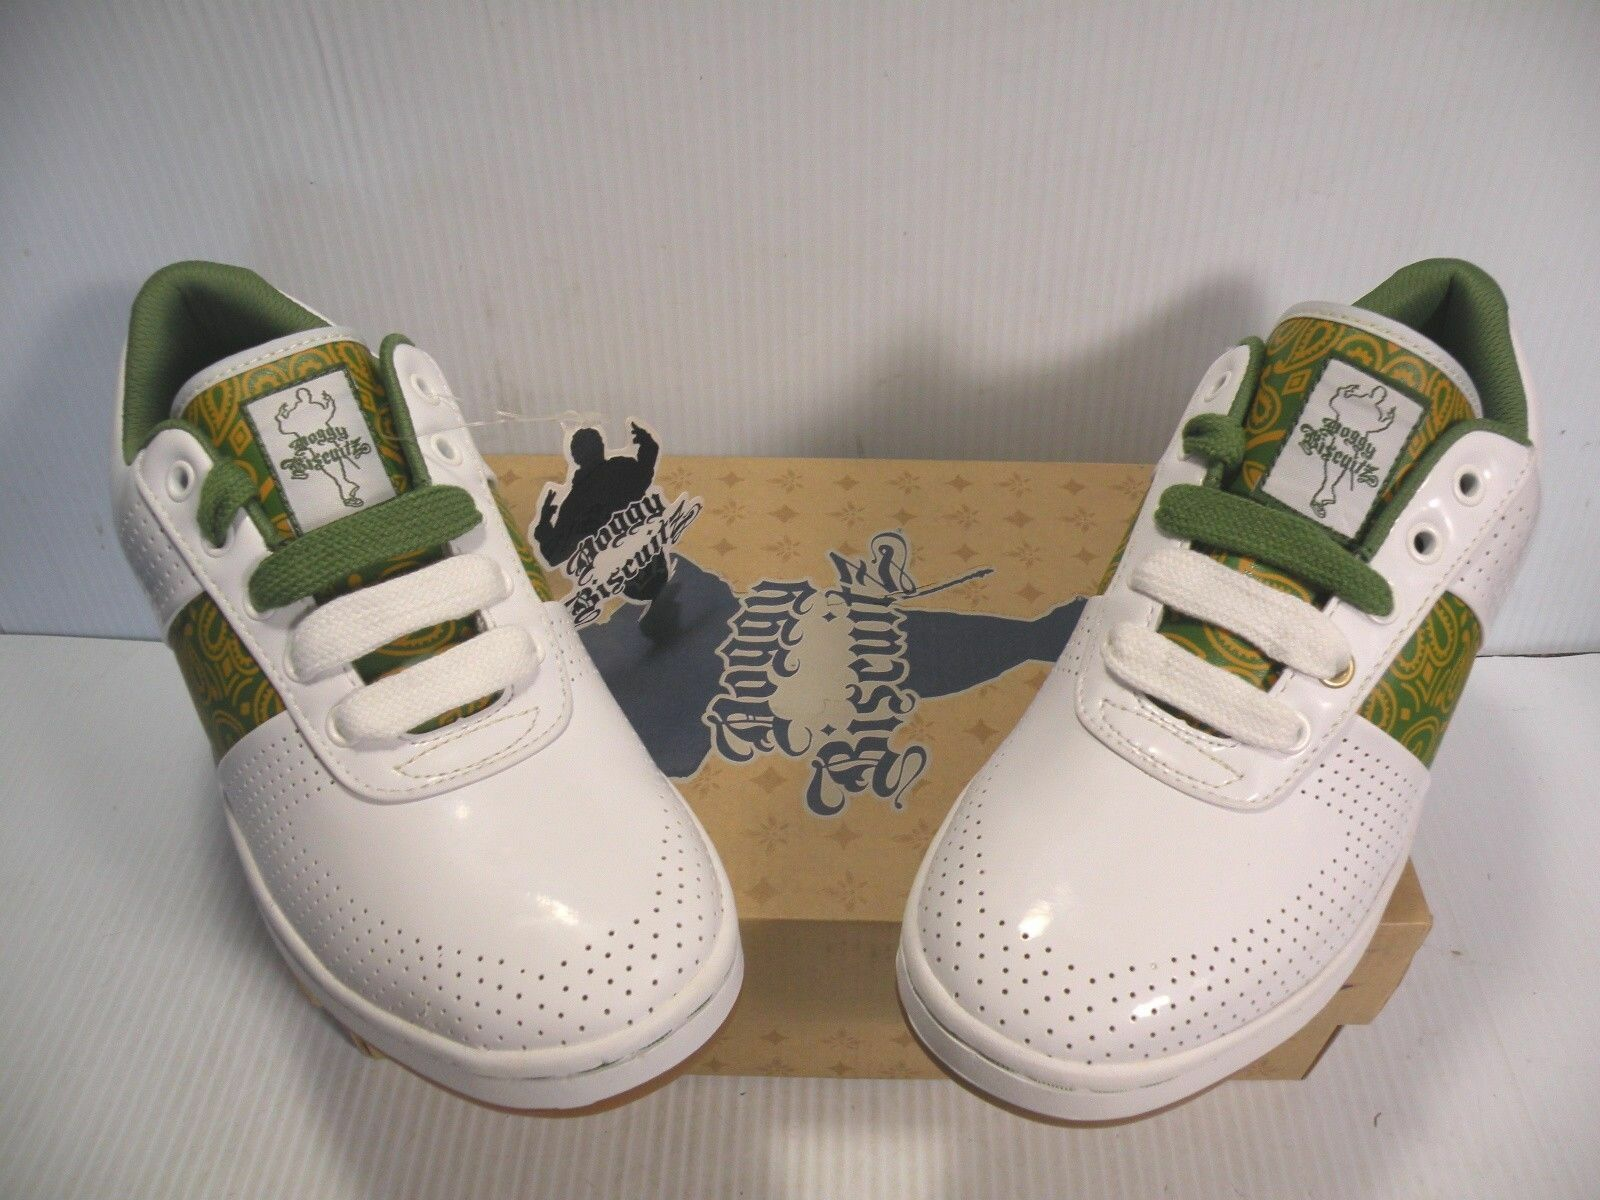 PONY SNOOP DOGG DOGGY BISCUITZ SIZE SNEAKERS WOMEN Schuhe Weiß SIZE BISCUITZ 7 NEW 809b6c